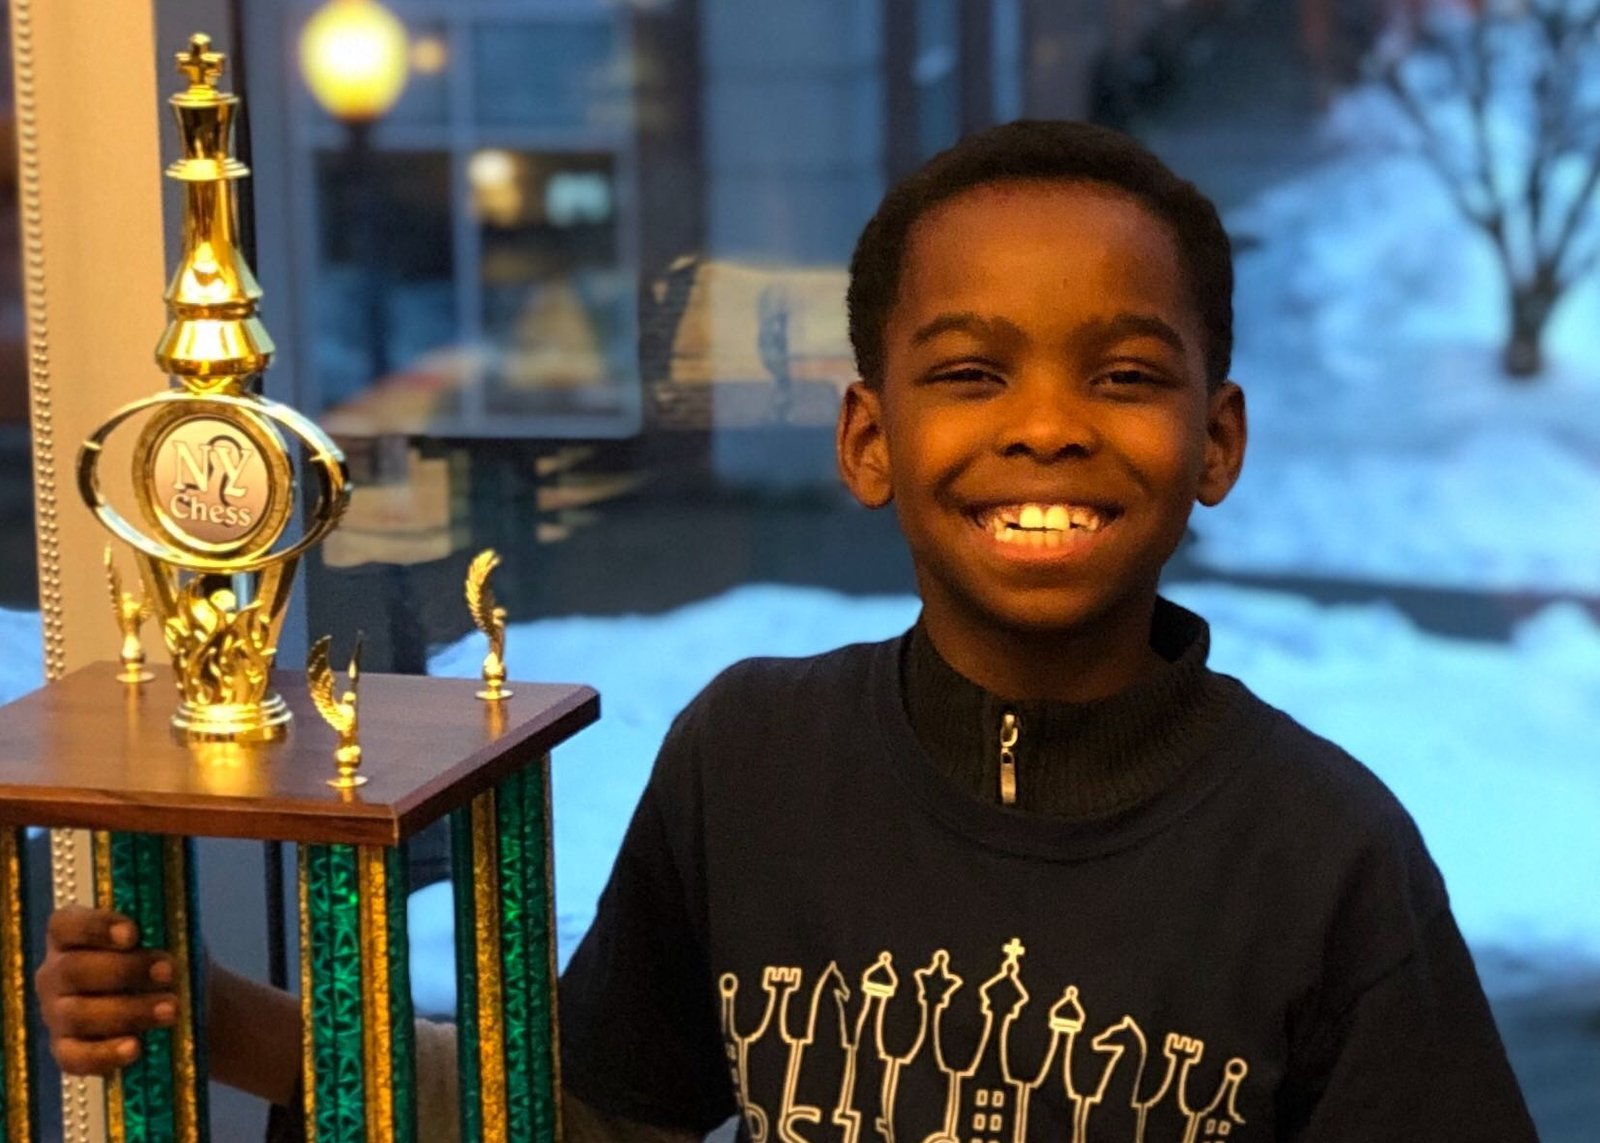 Tanitoluwa (Tani) Adewumi only learned to play chess about a year ago, but he won the New York State Scholastic Primary Championship in his age bracket. (Credit: CNN)